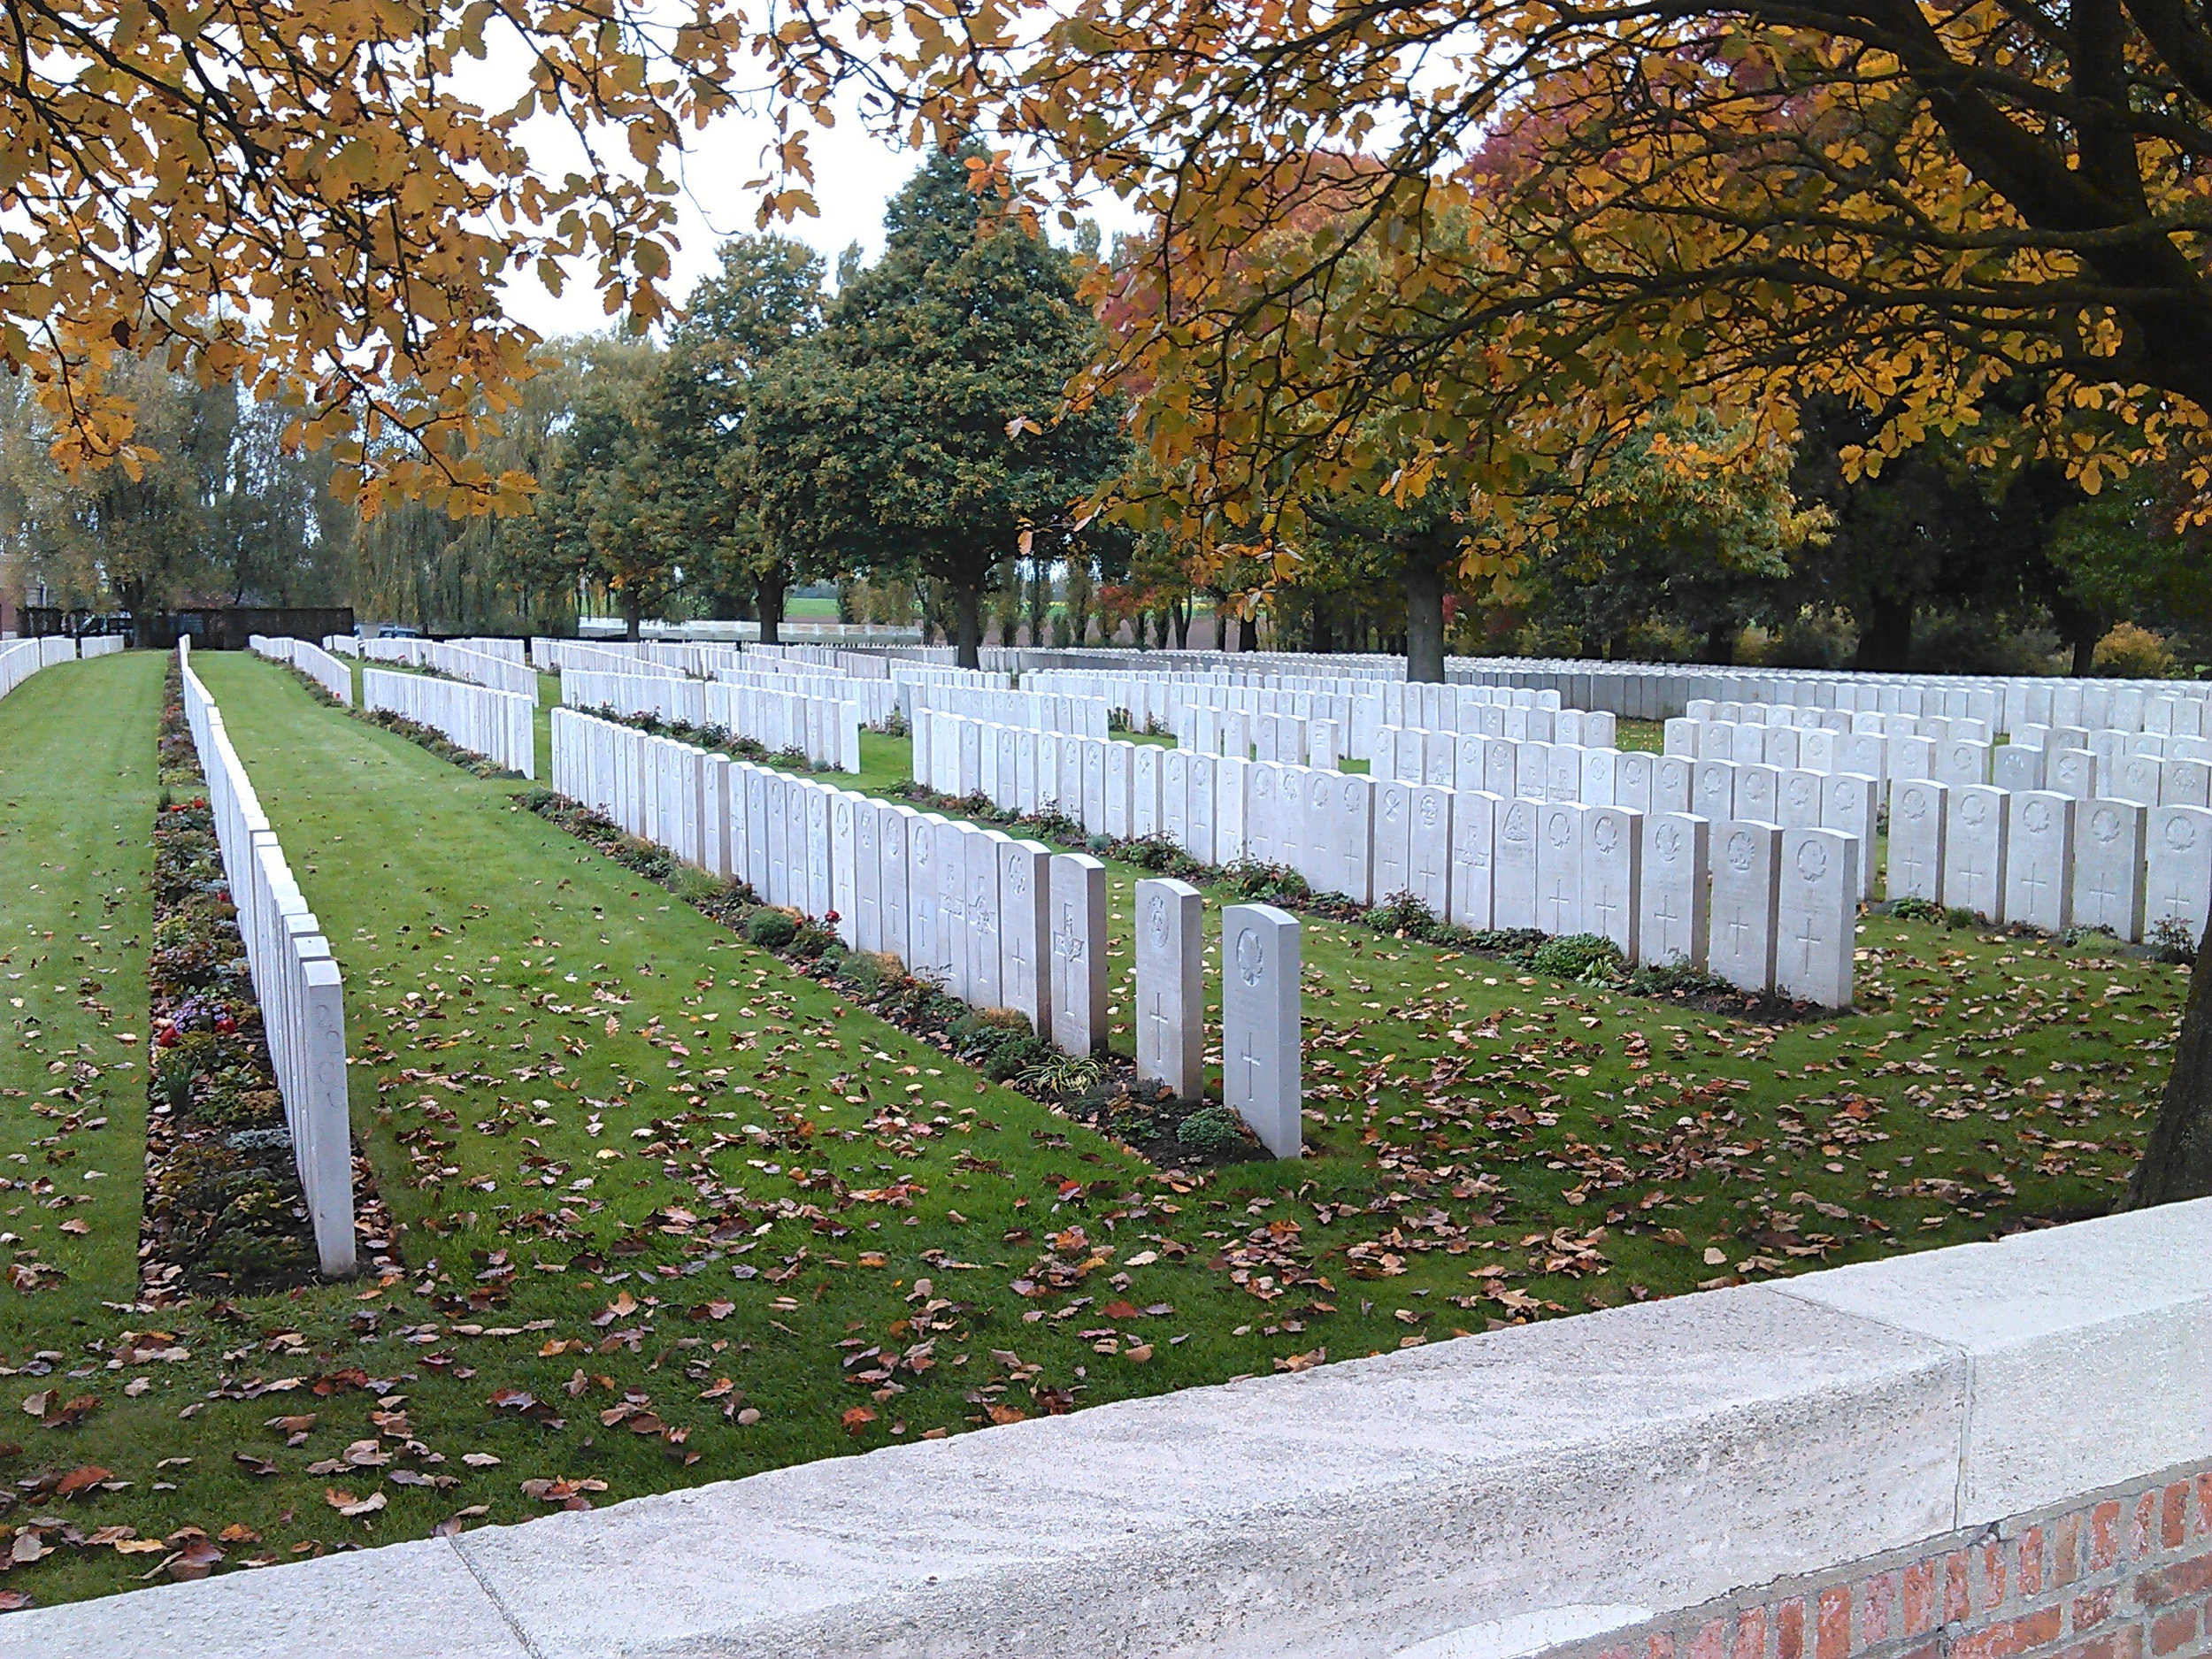 : Lijssenthoek, the second largest Commonwealth War Graves Commission cemetery in Belgium after Tyne Cot, contains 9,901 Commonwealth burials of the First World War, 24 being unidentified. Of these, 1,058 are Canadian, with the majority falling between April and November 1916.